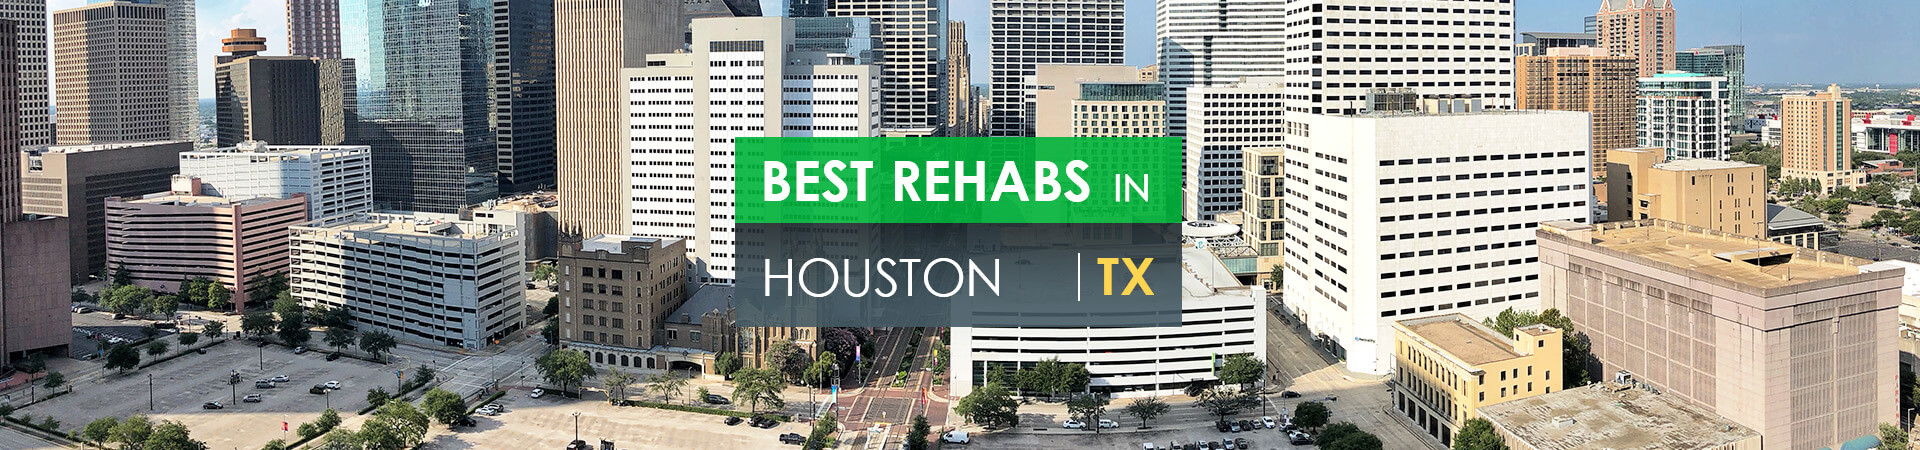 Best rehabs in Houston, TX